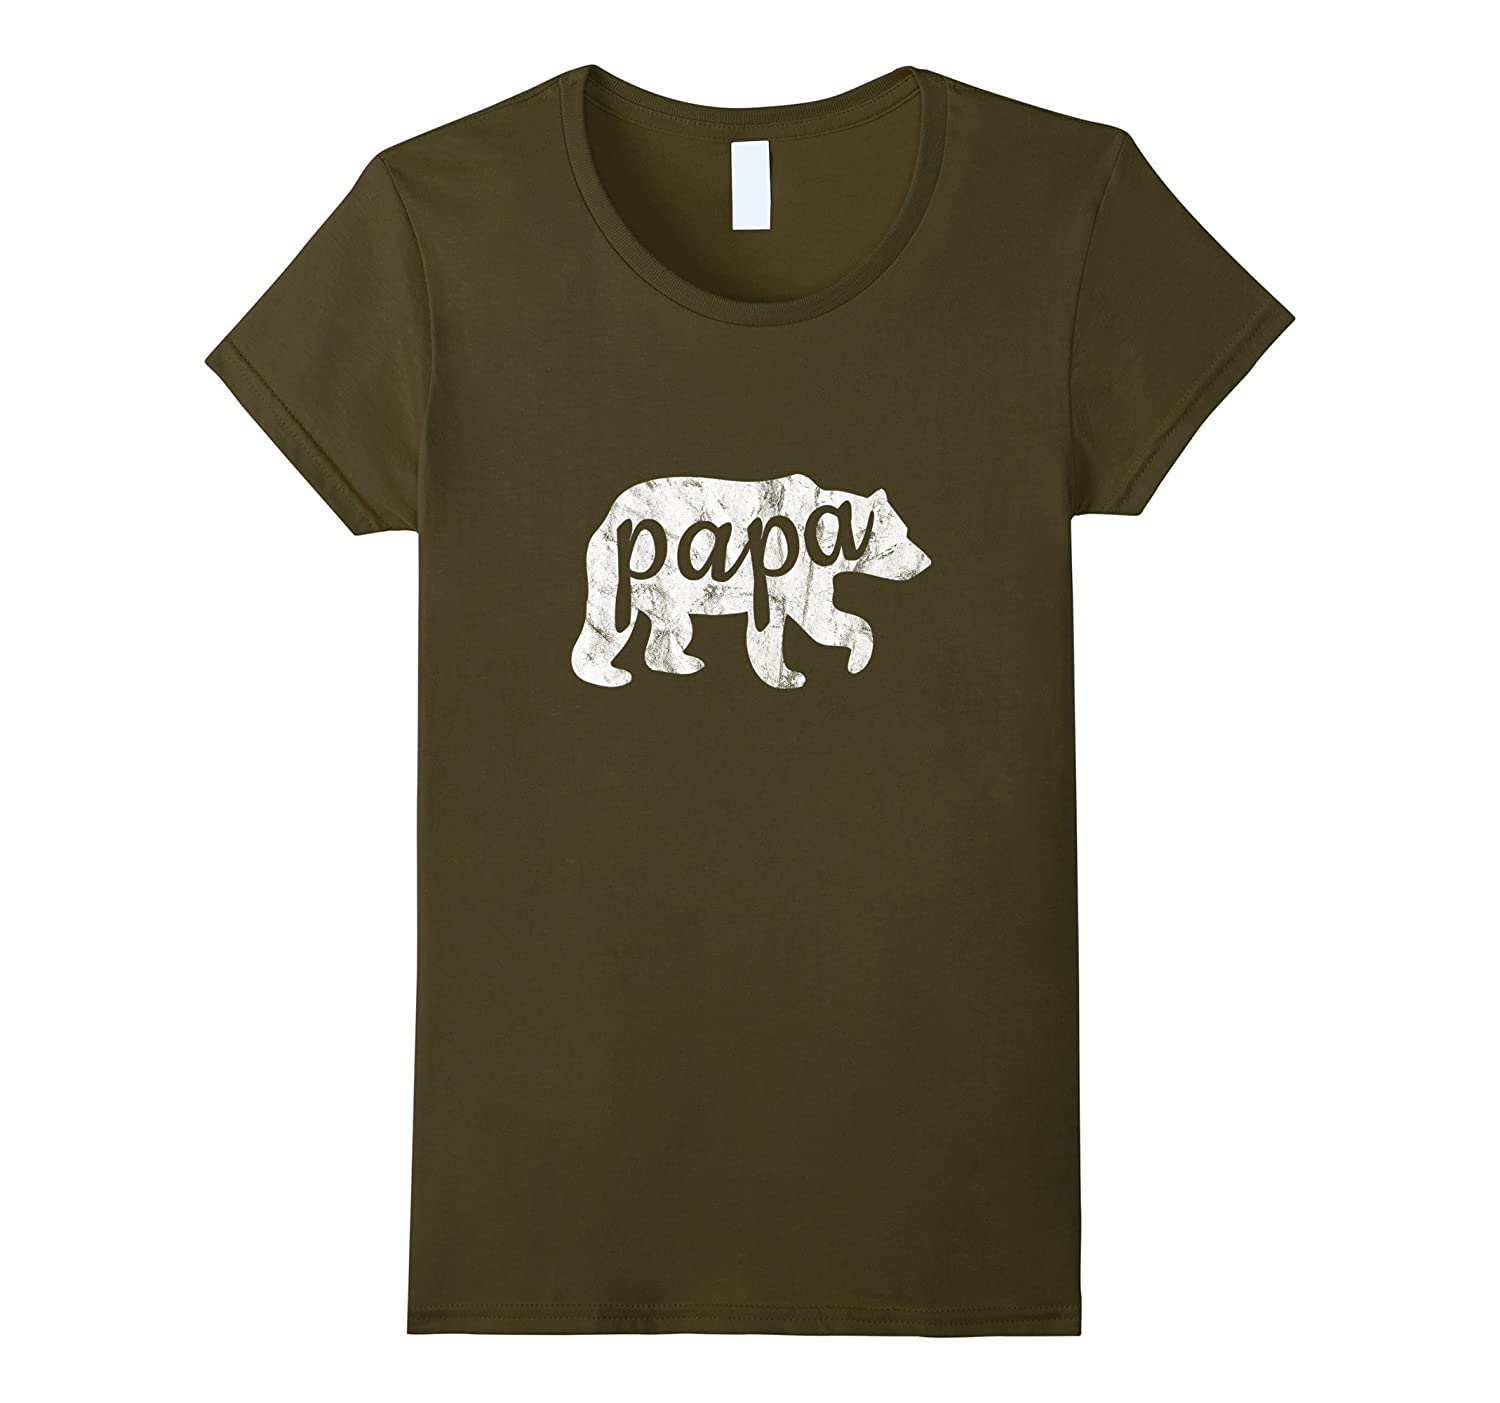 Papa Bear Shirt Funny Dad Son Matching Fathers Day Outfit